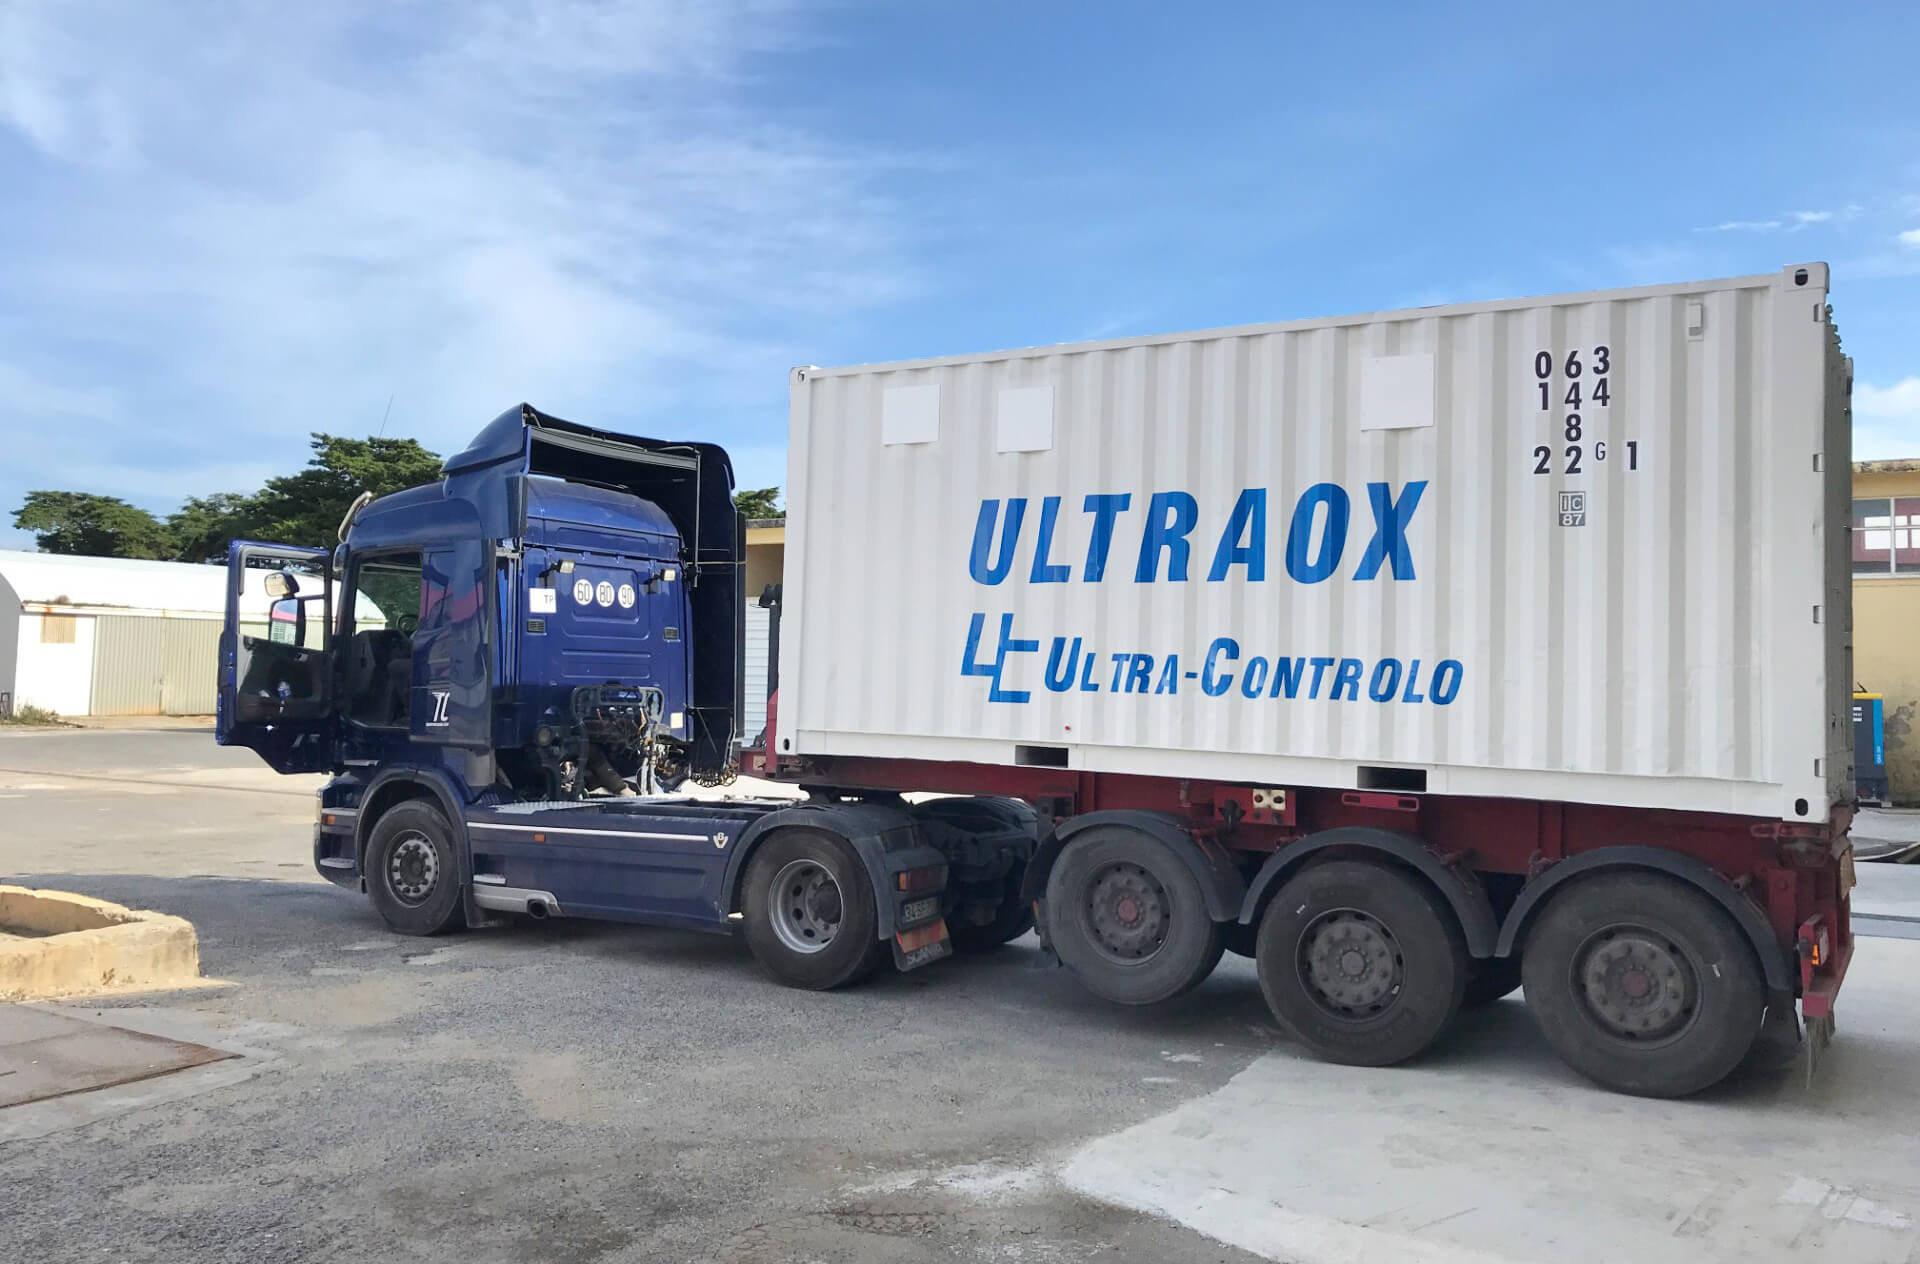 Today we supply the 7th ULTRAOX Medical Oxygen Plant for Niger